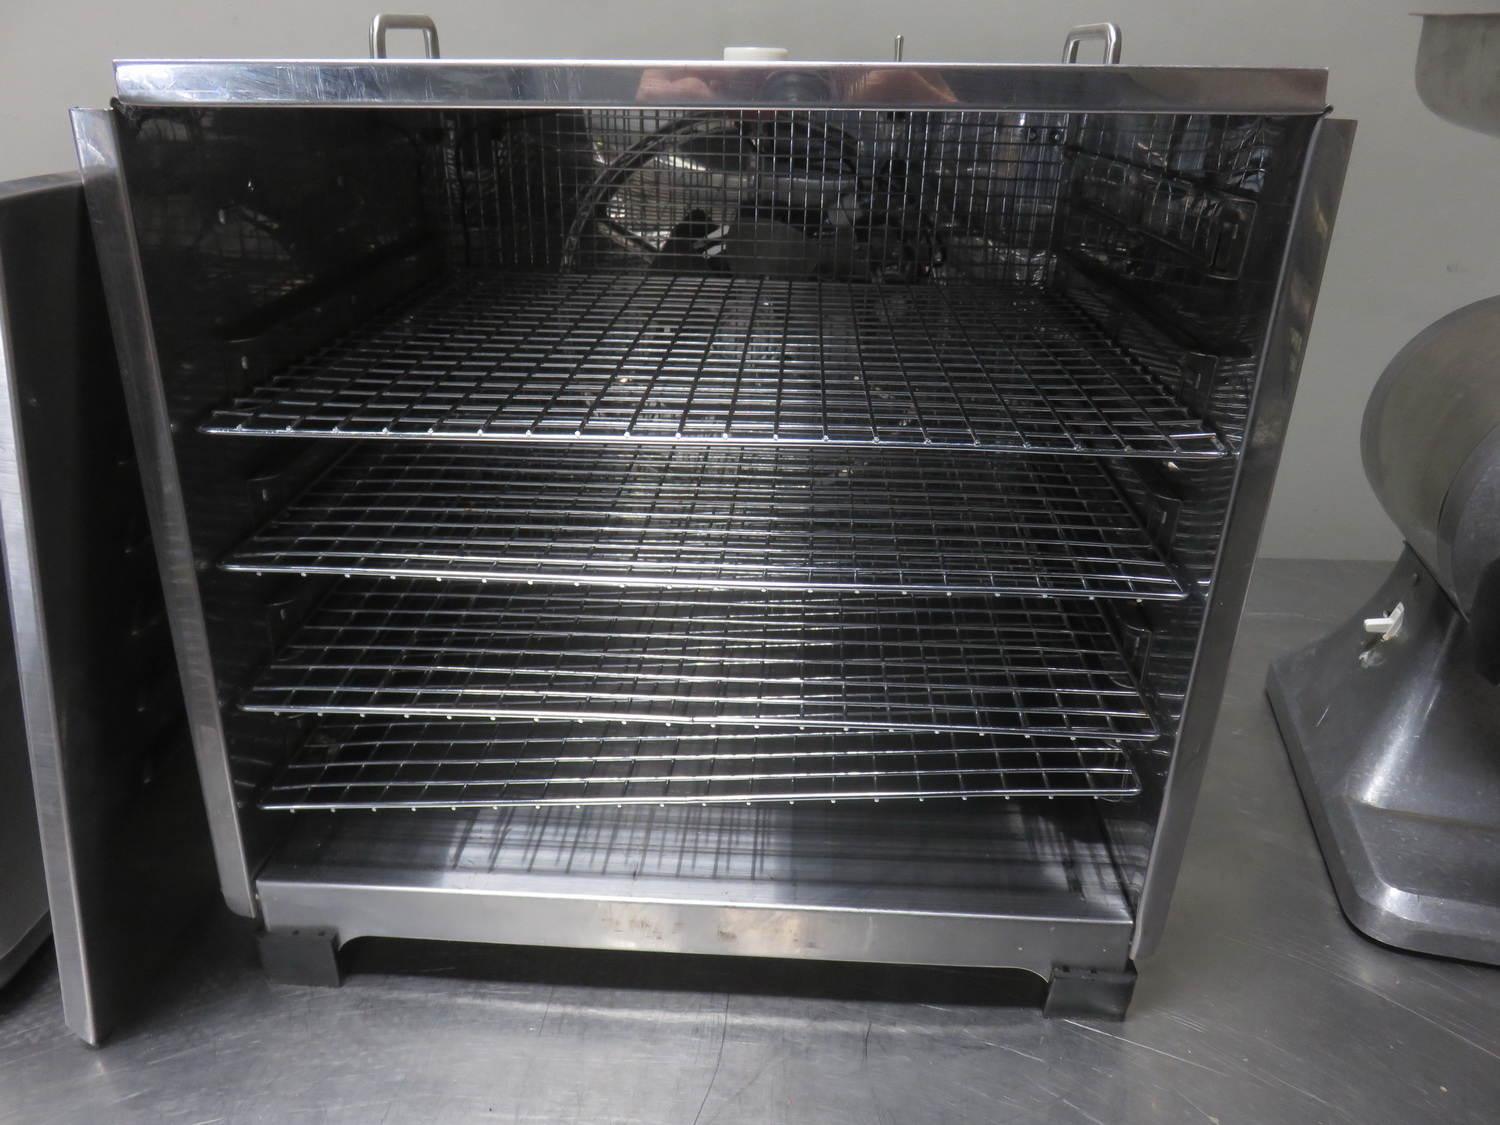 OMCAN 10924 STAINLESS FOOD DEHYDRTOR (110V) W/ 4-SHELVES - Image 2 of 3